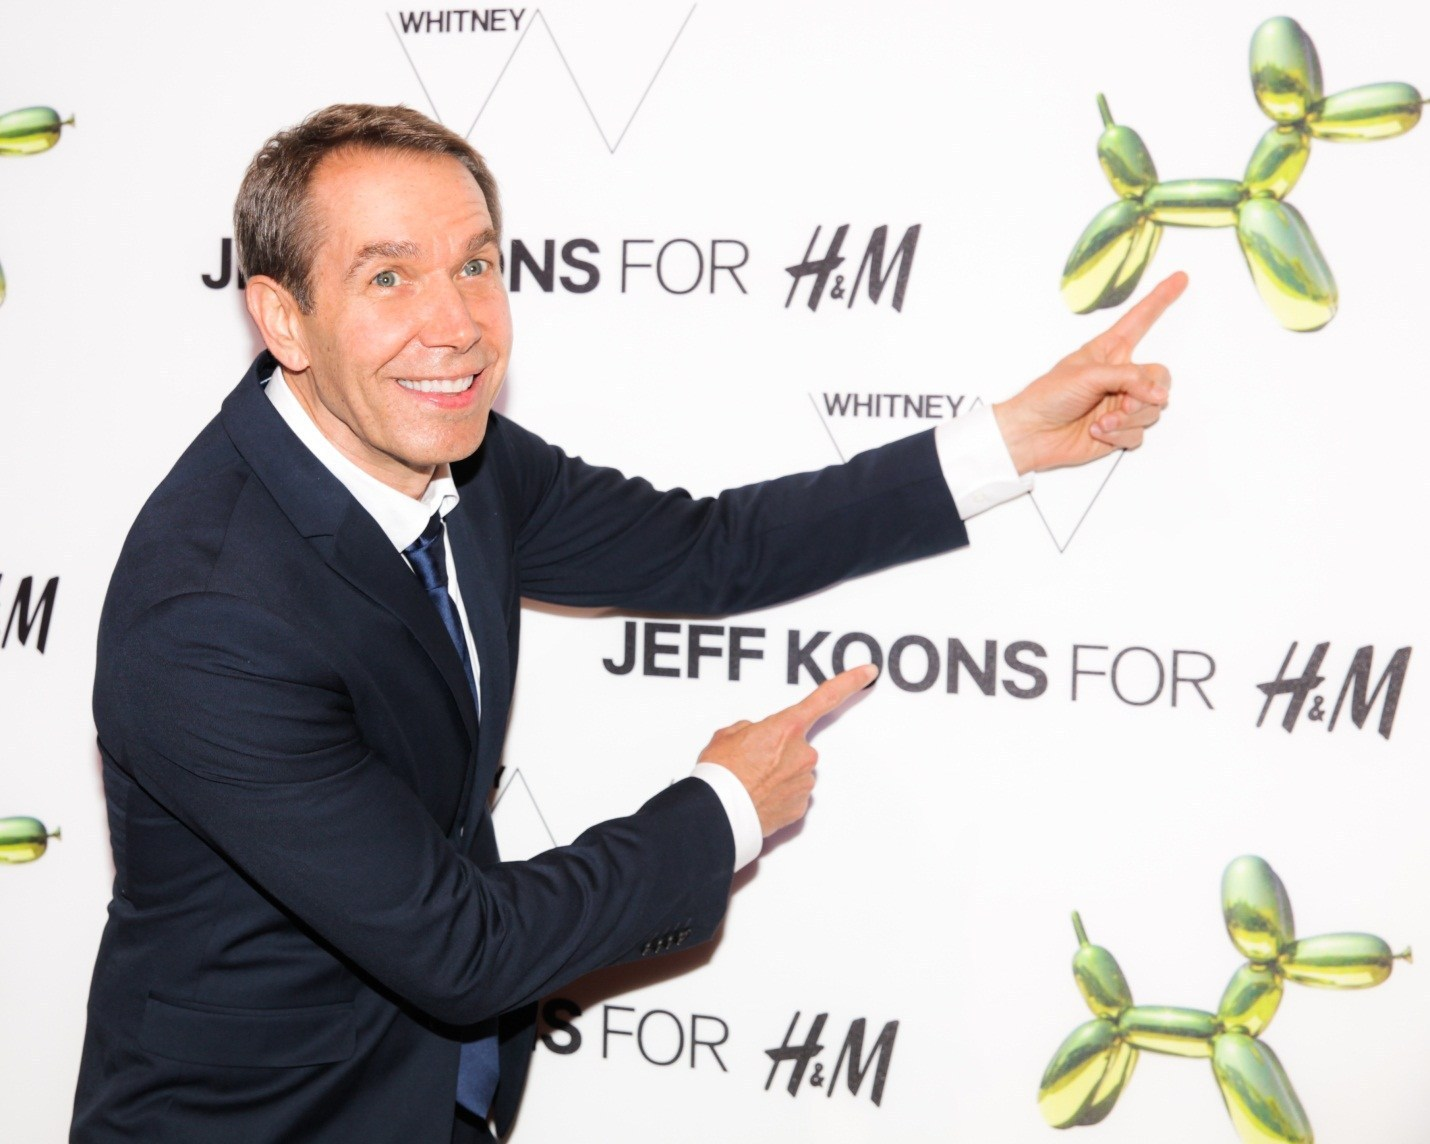 H&M, Jeff Koons and The Whitney Hosted The Opening of Largest H&M Store In The World